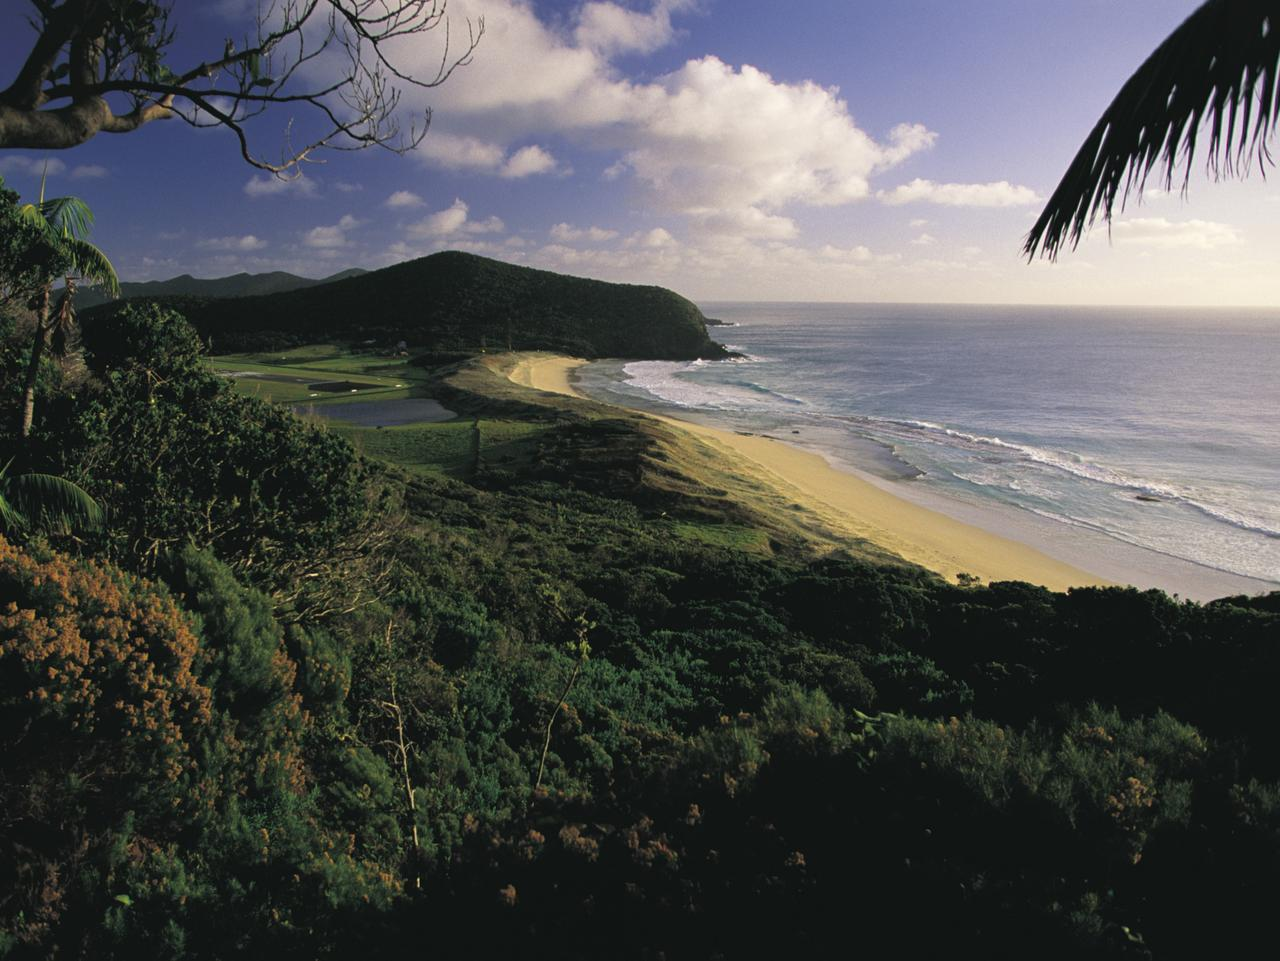 ESCAPE: NSW BEACHES, LOUISE SOUTHERDEN,  Blinky Beach, Lord Howe Island. Picture: Don Fuchs; Destination NSW